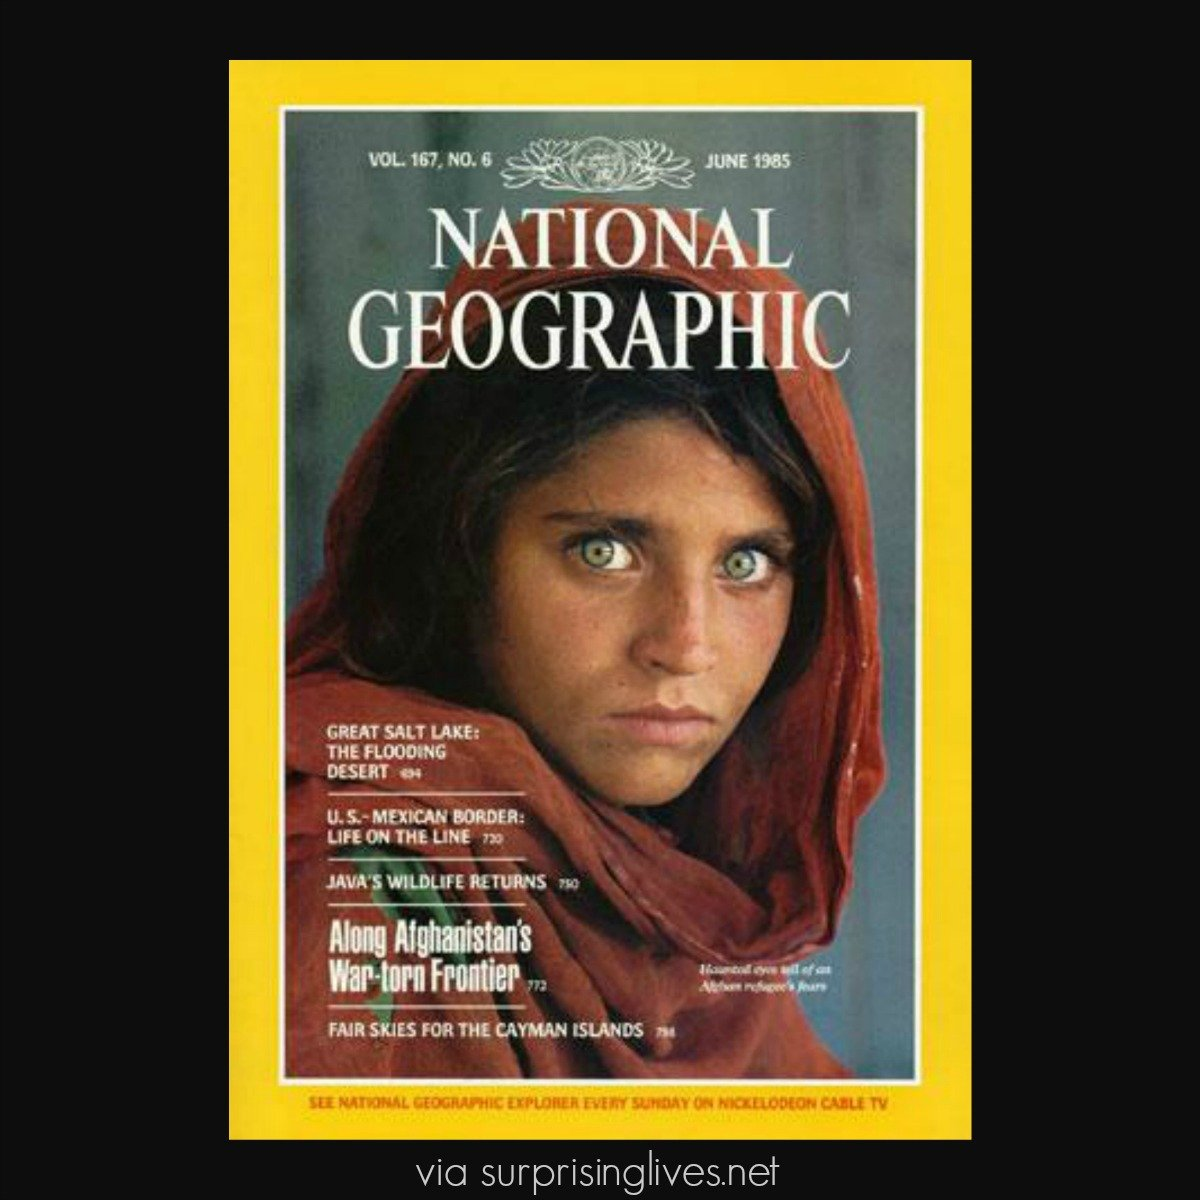 sharbat-gula-afghan-girl-today-updated by surprising lives